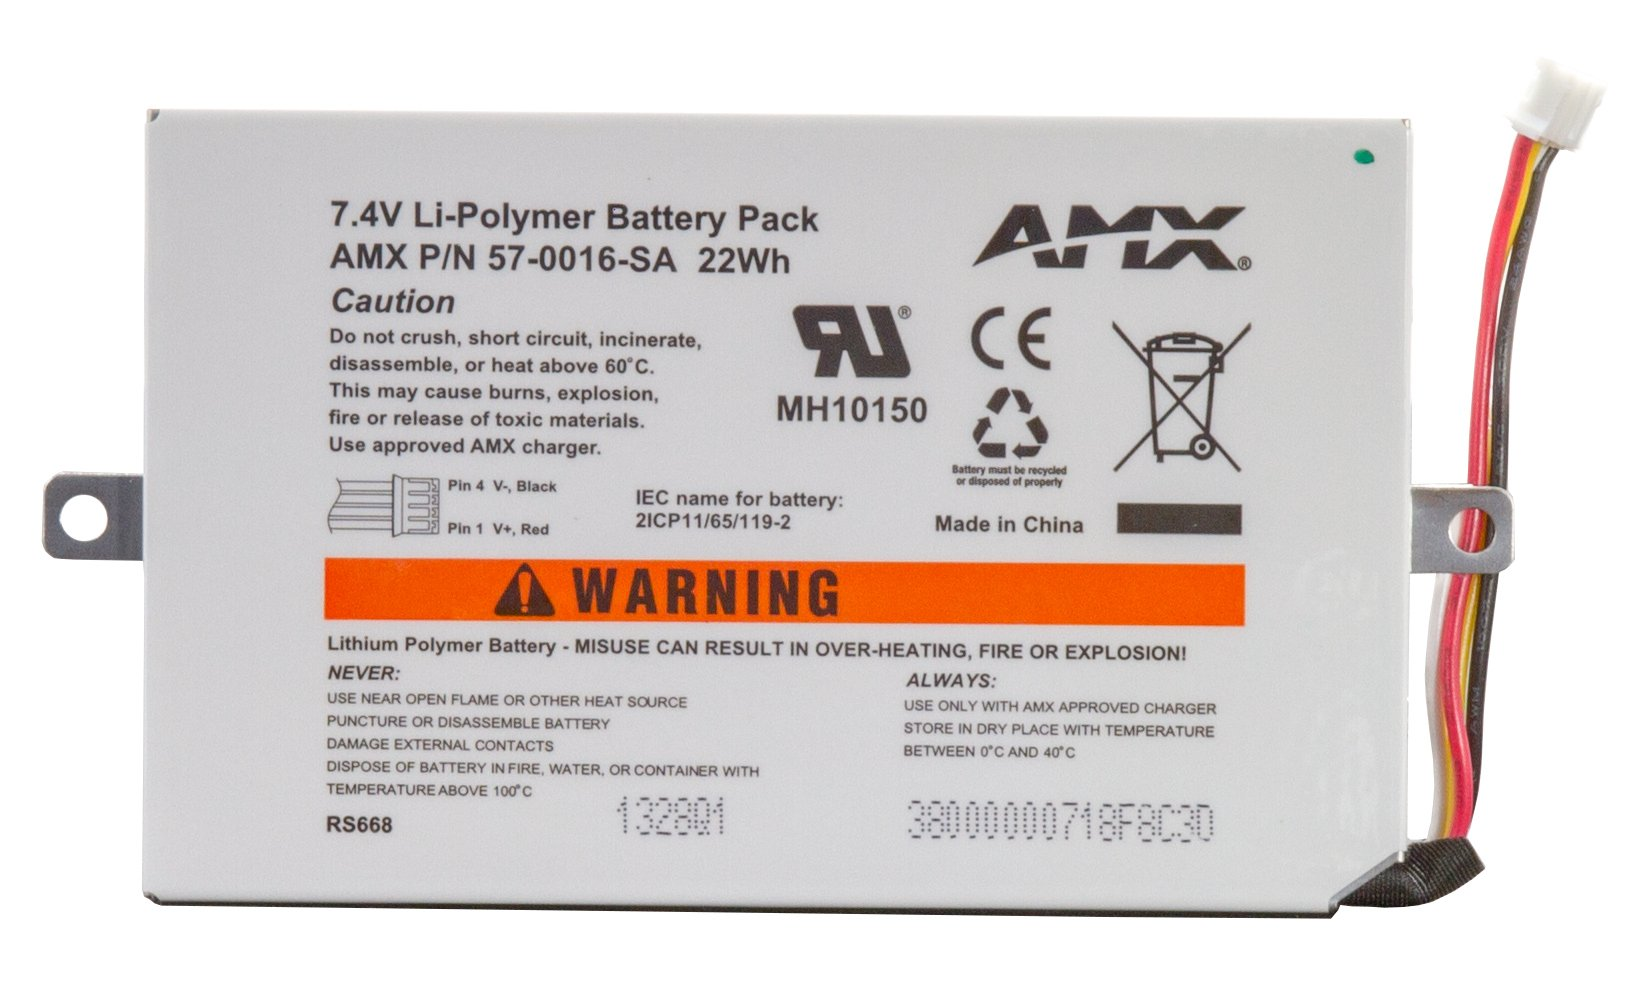 Battery Pack for MVP-5200i & MVP-5100/5150 Modero ViewPoint Touch Panels